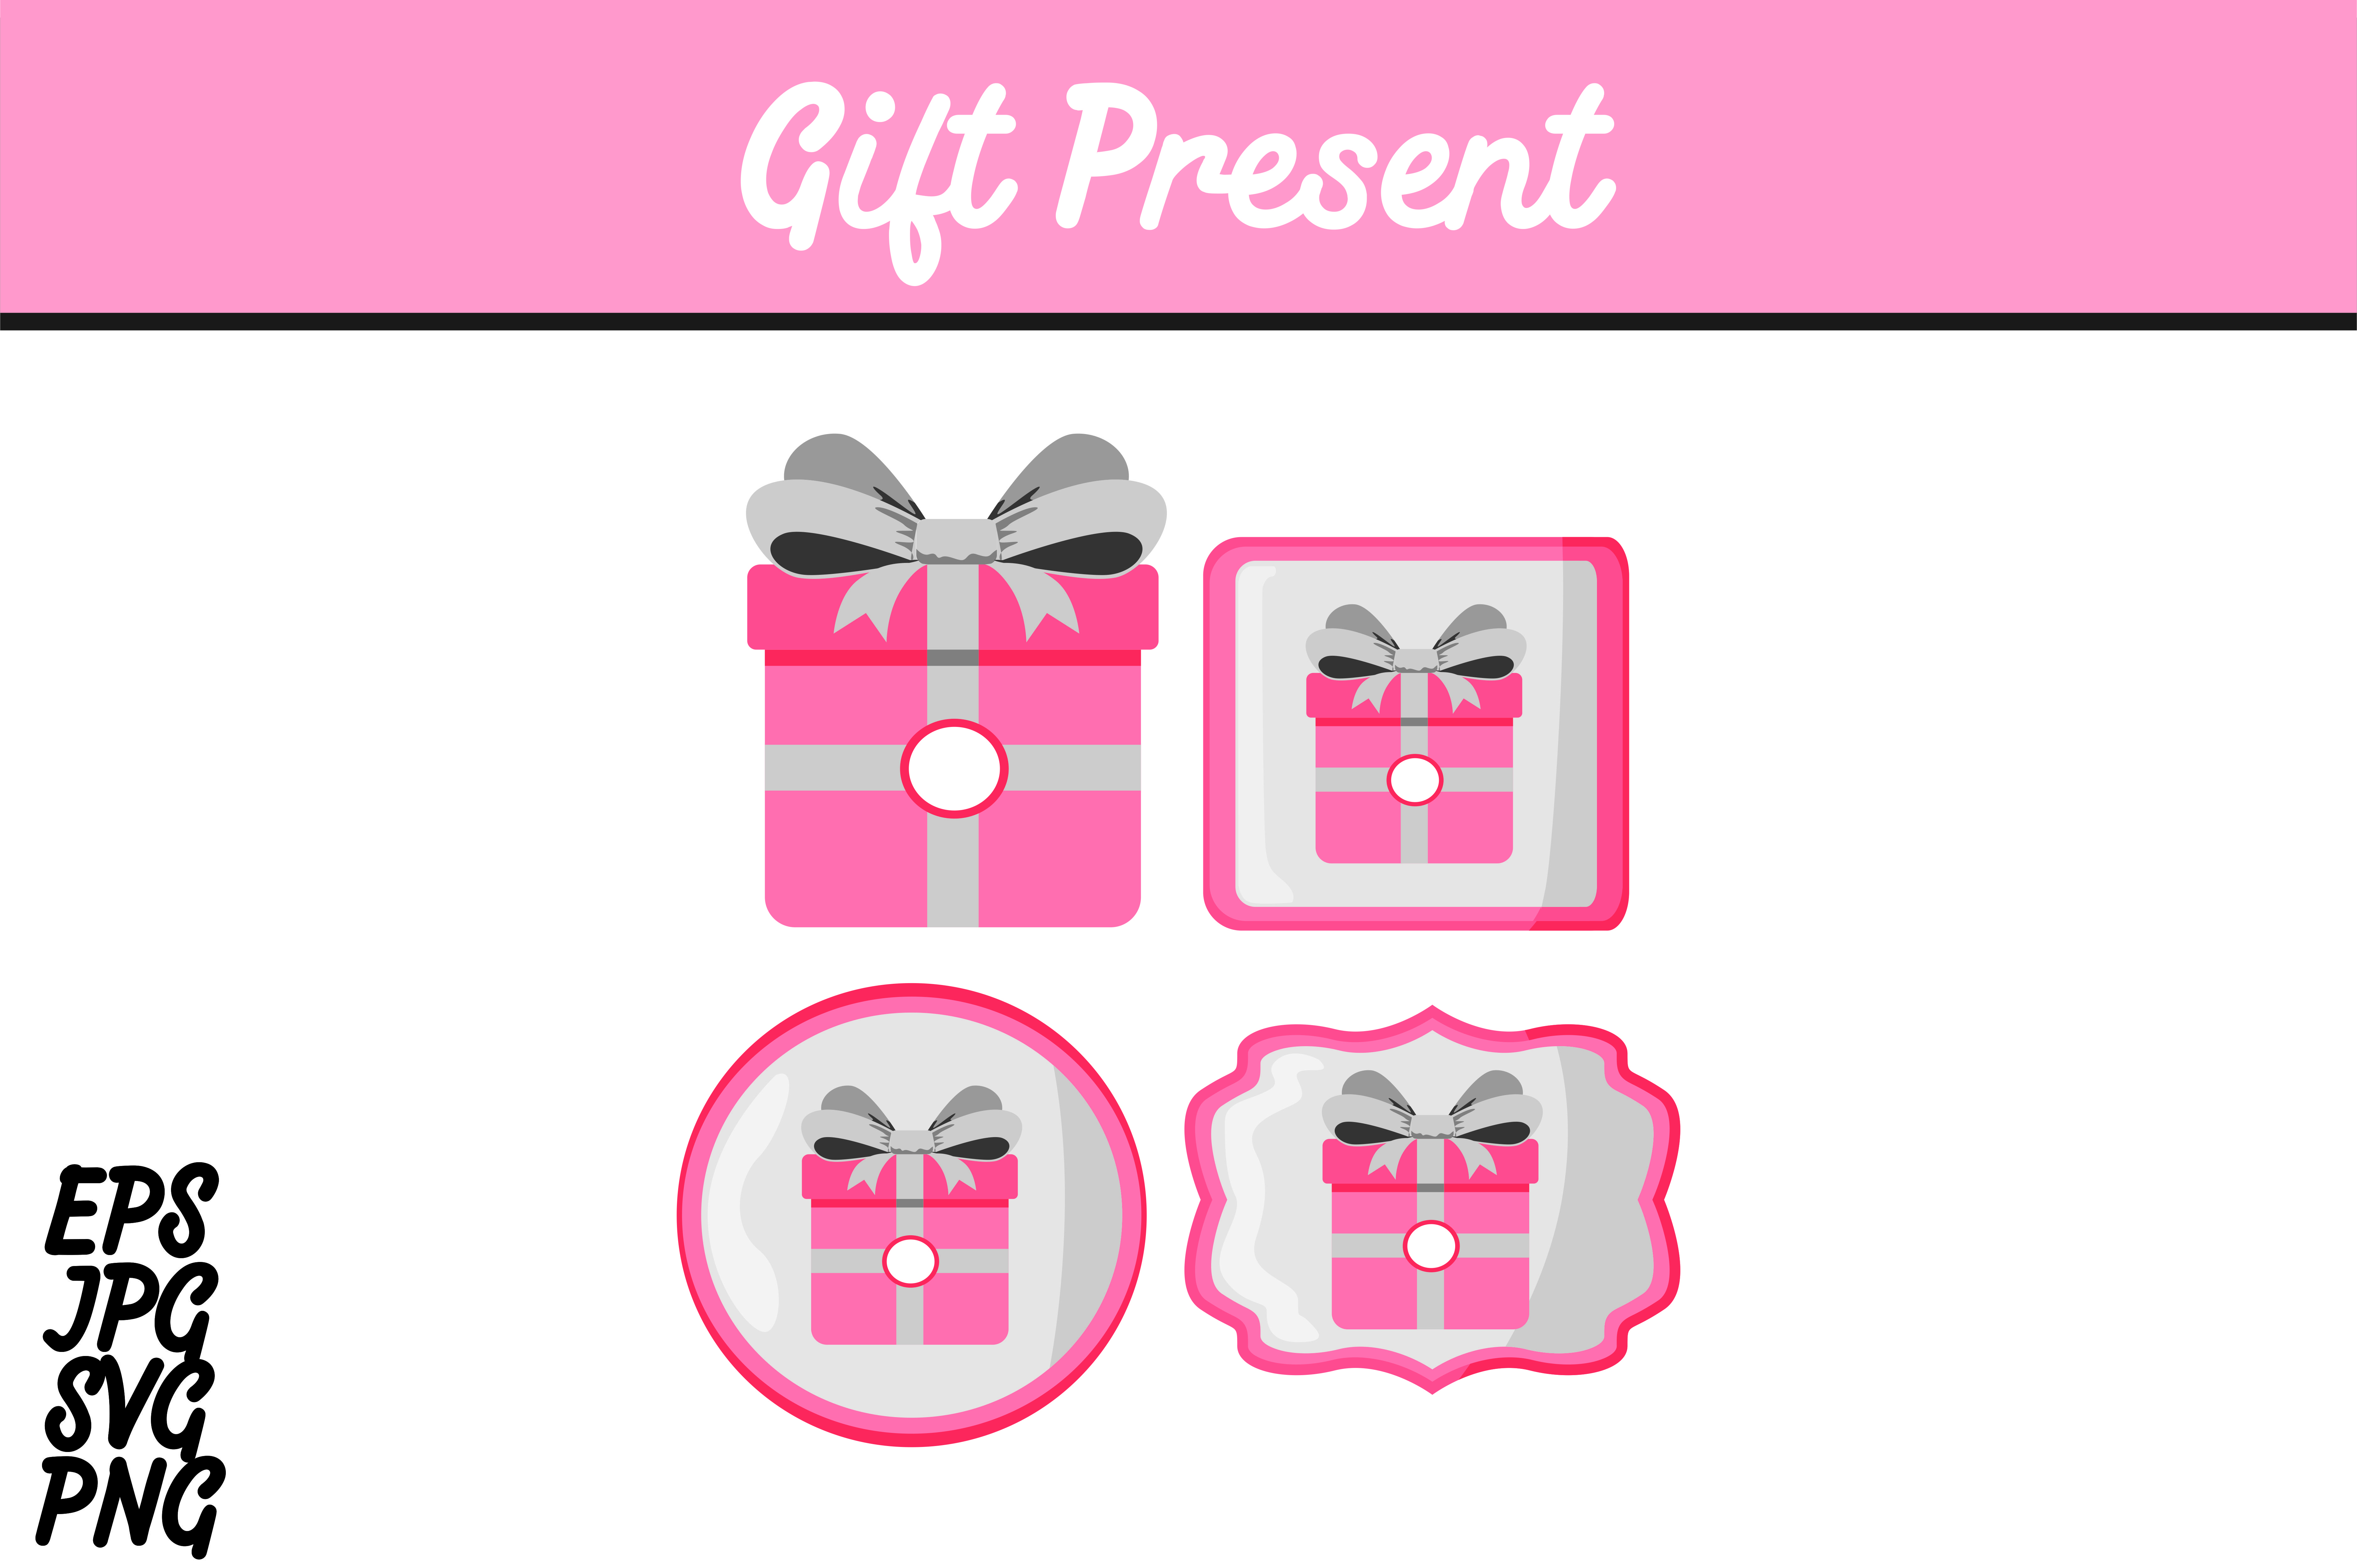 Download Free Bundle Pink Gift Present Set Svg Vector Image Graphic By Arief for Cricut Explore, Silhouette and other cutting machines.